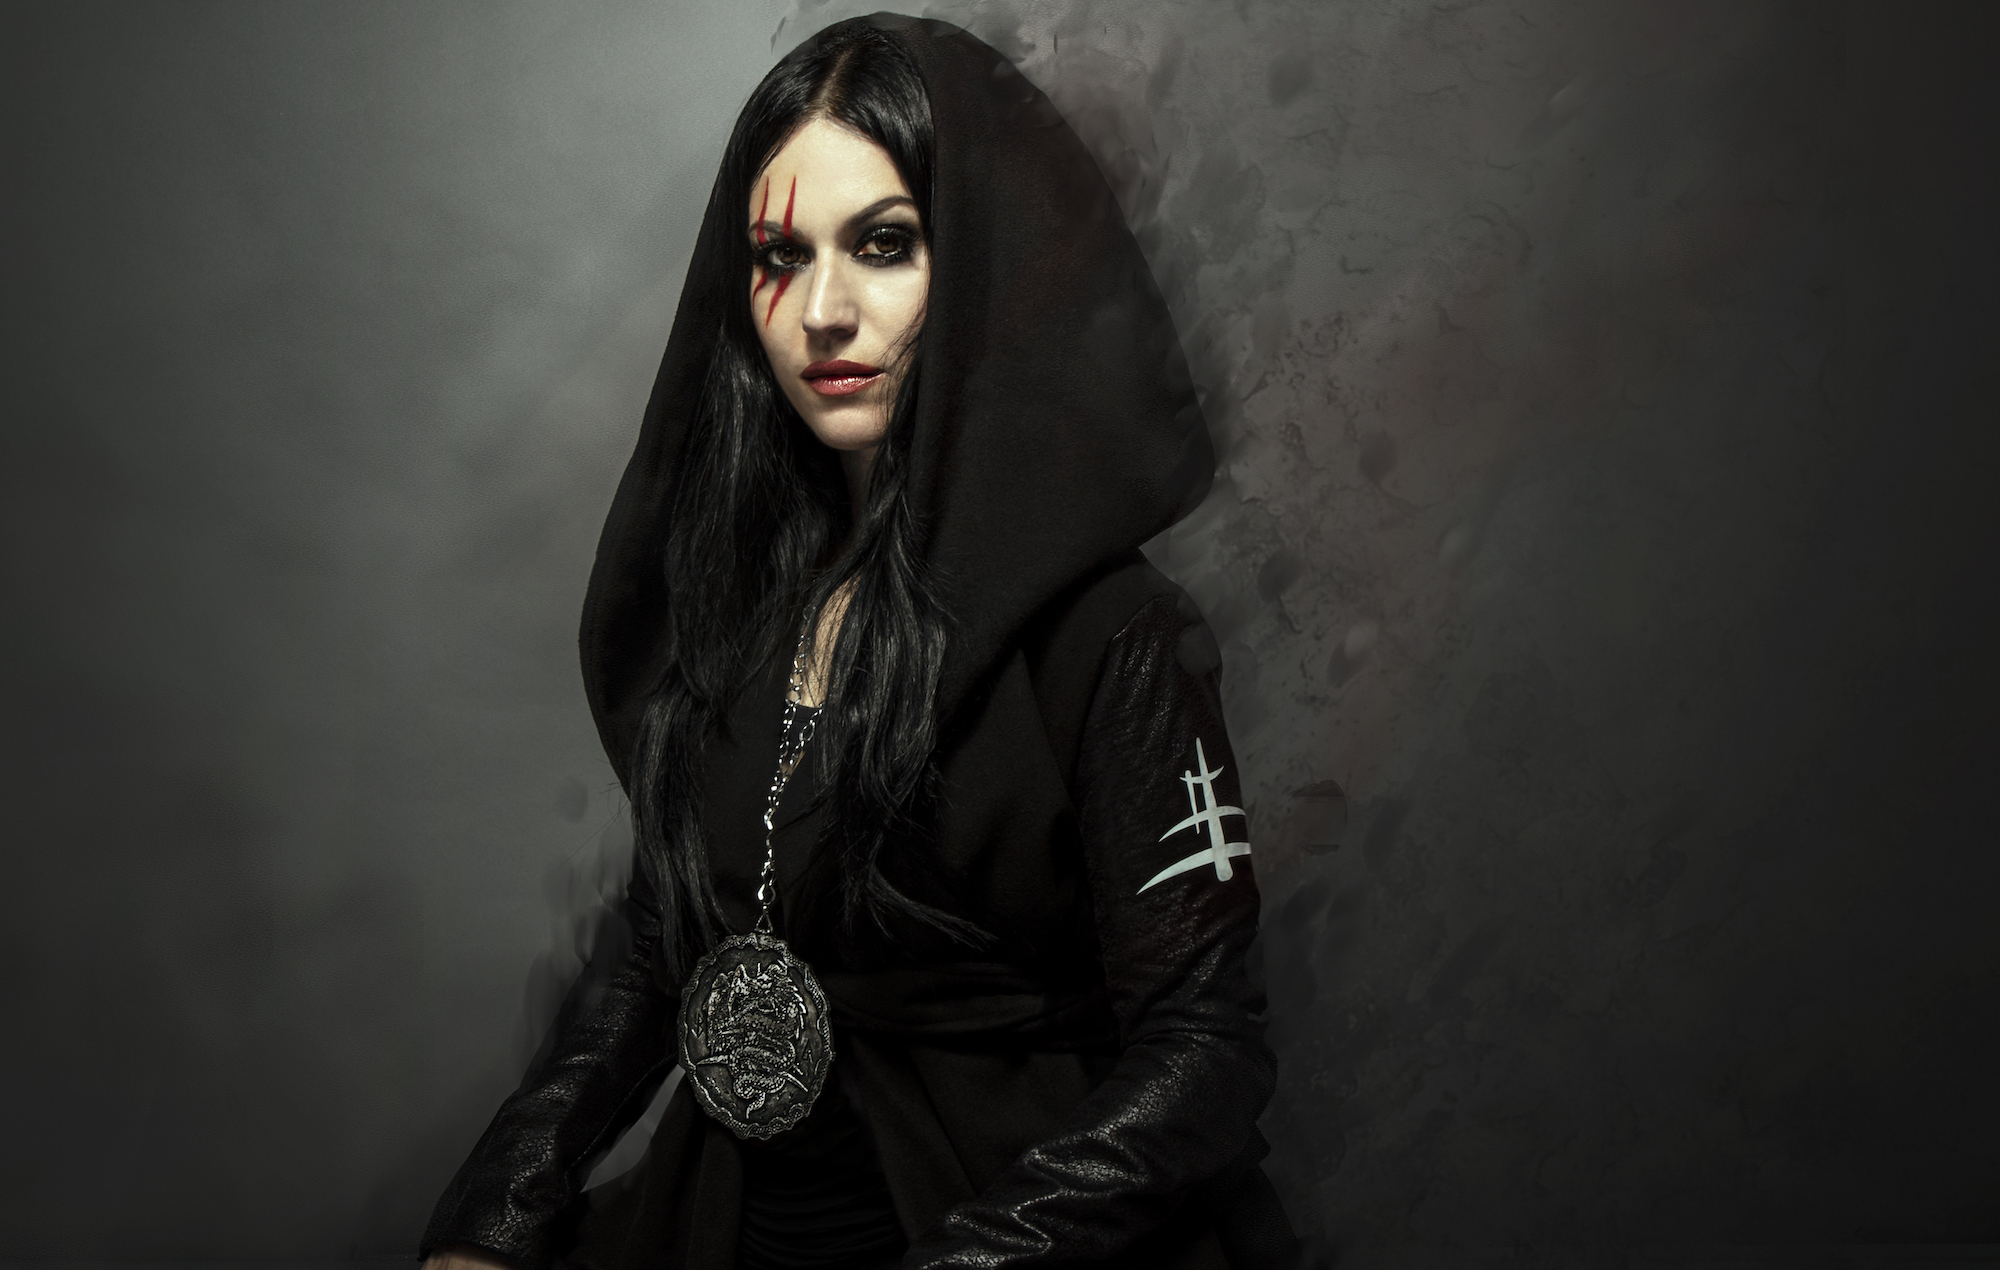 """Lacuna Coil's Cristina Scabbia wants you to """"lay down on your bed, close your eyes and come on a journey with us"""""""